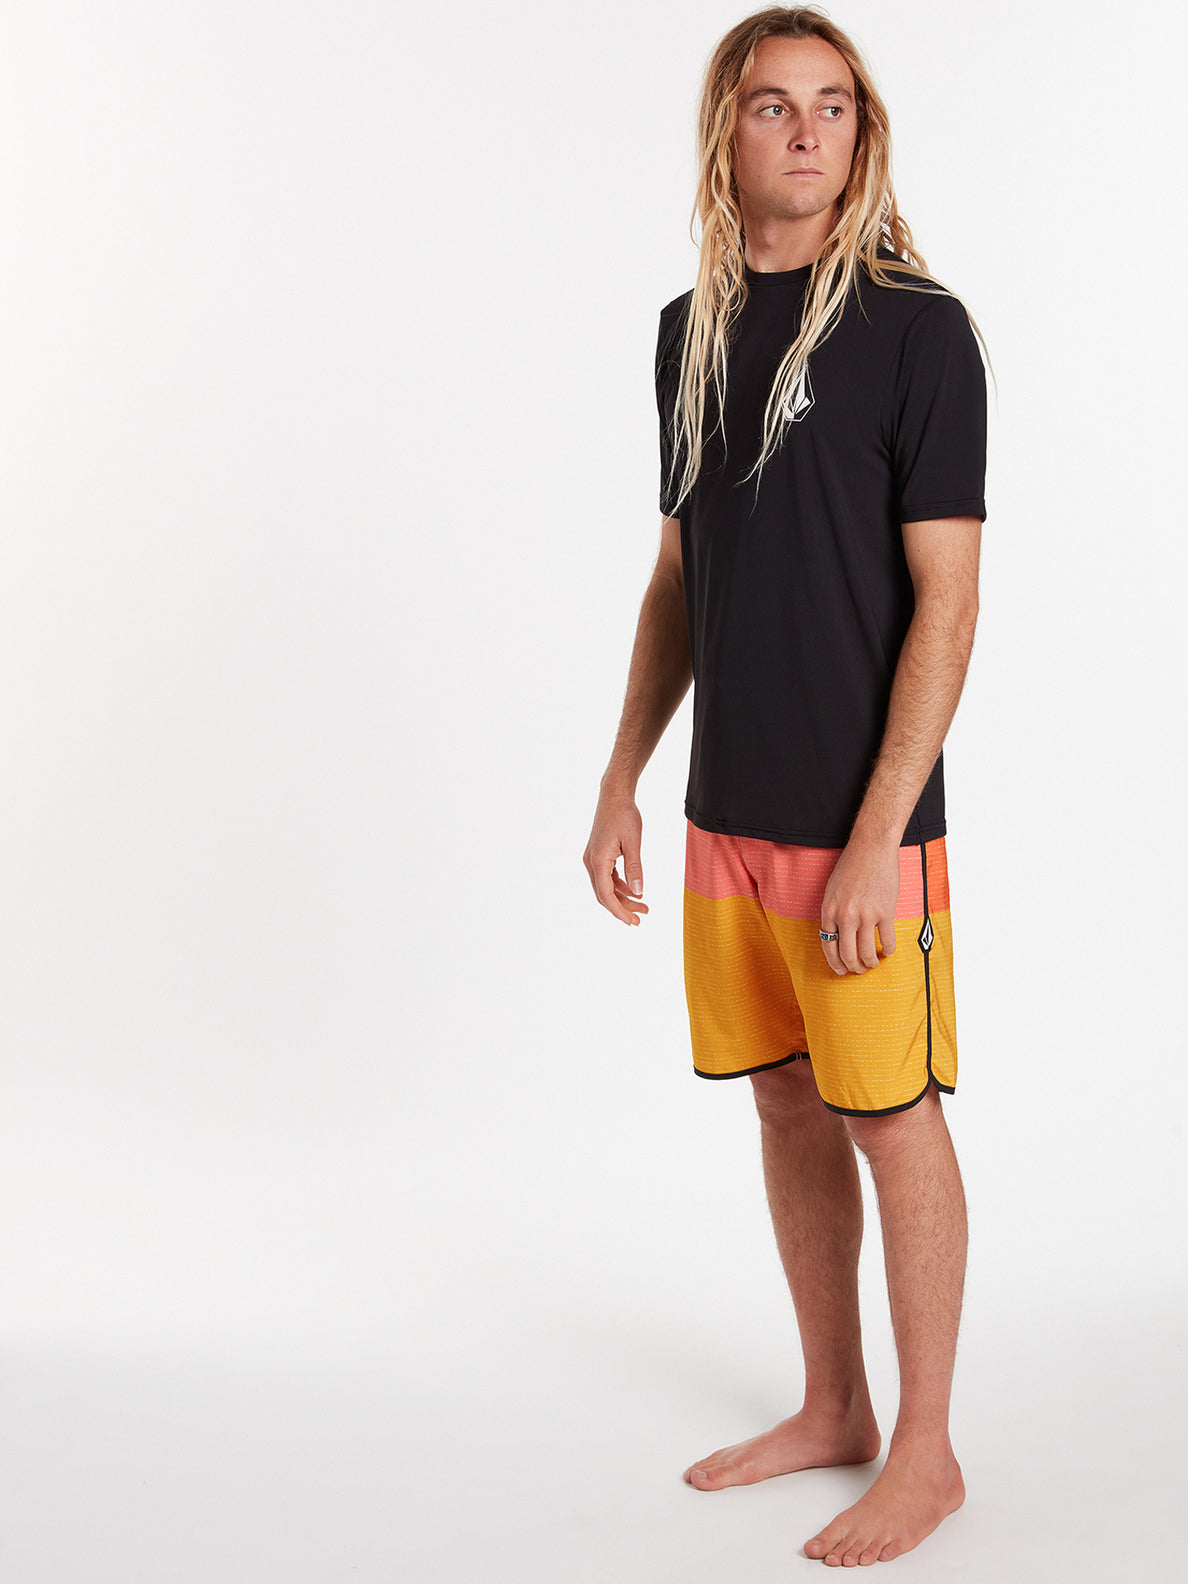 Lido Scallop Mod-Tech Trunks - Mineral Yellow (A0822015_MYL) [02]